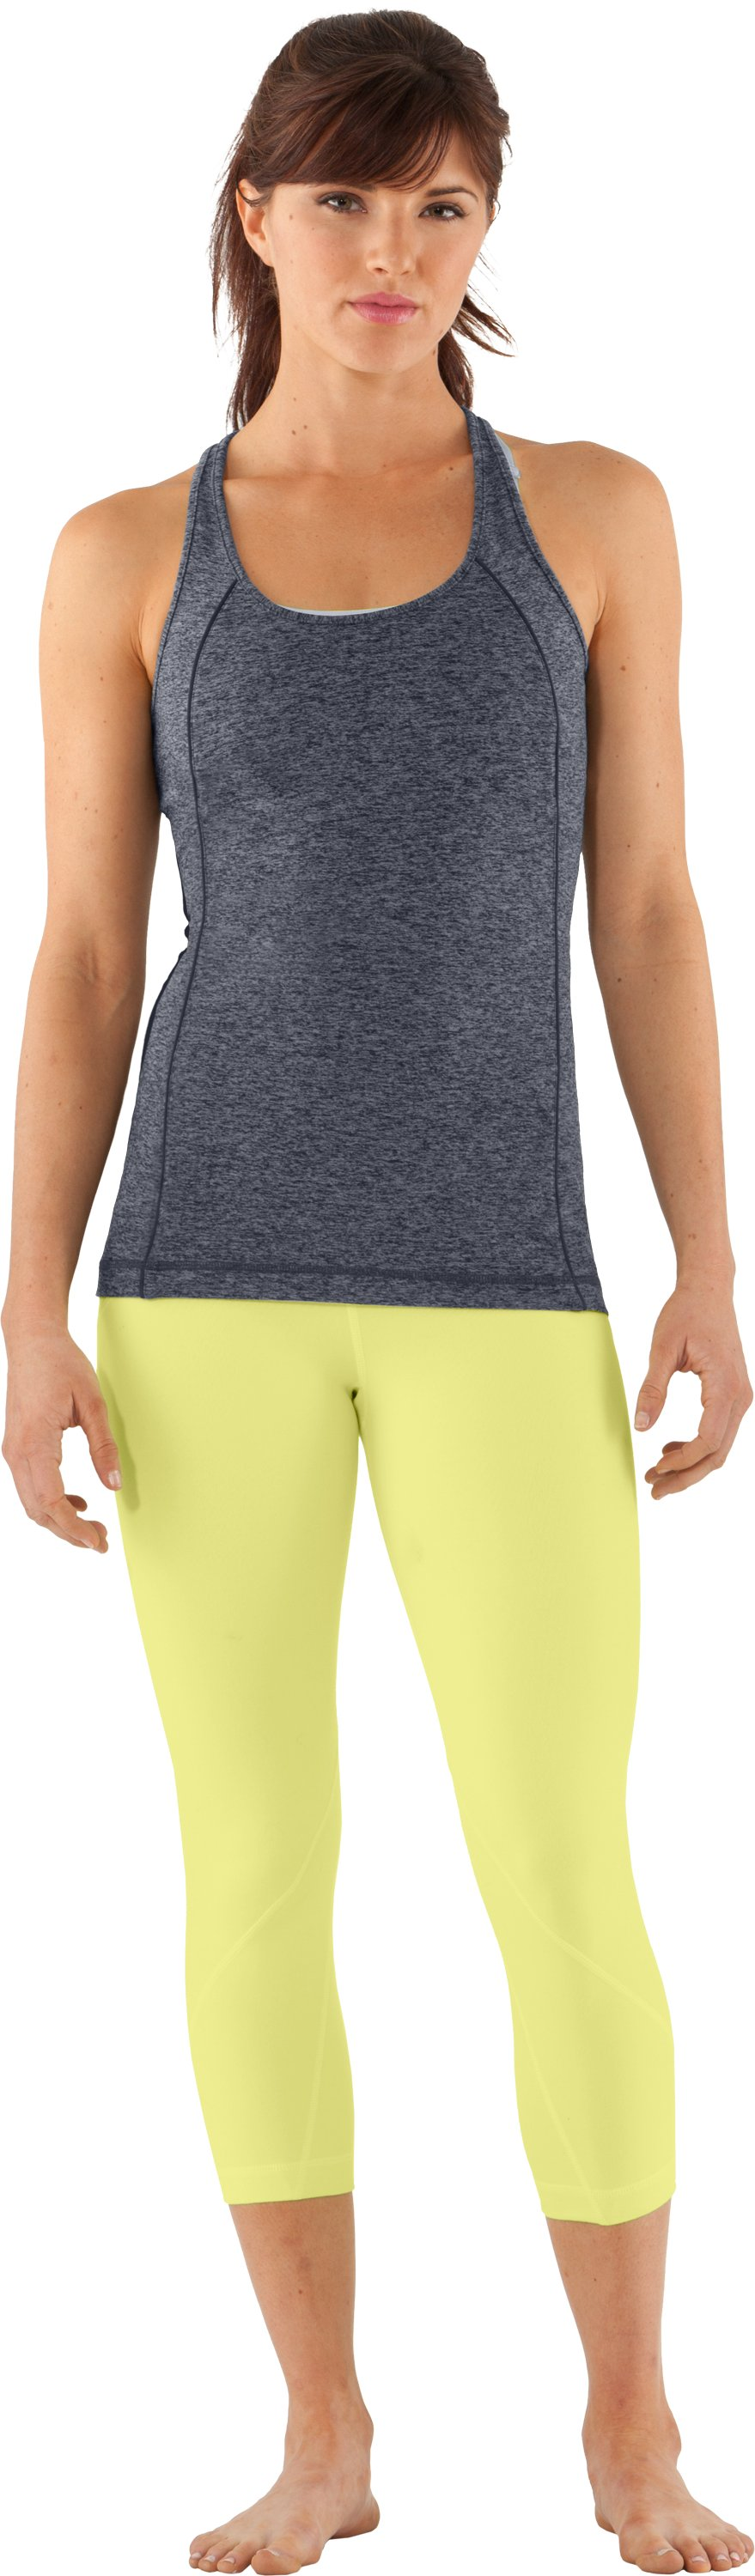 Women's UA Studio Rave Racer Back, ANTHRACITE, zoomed image